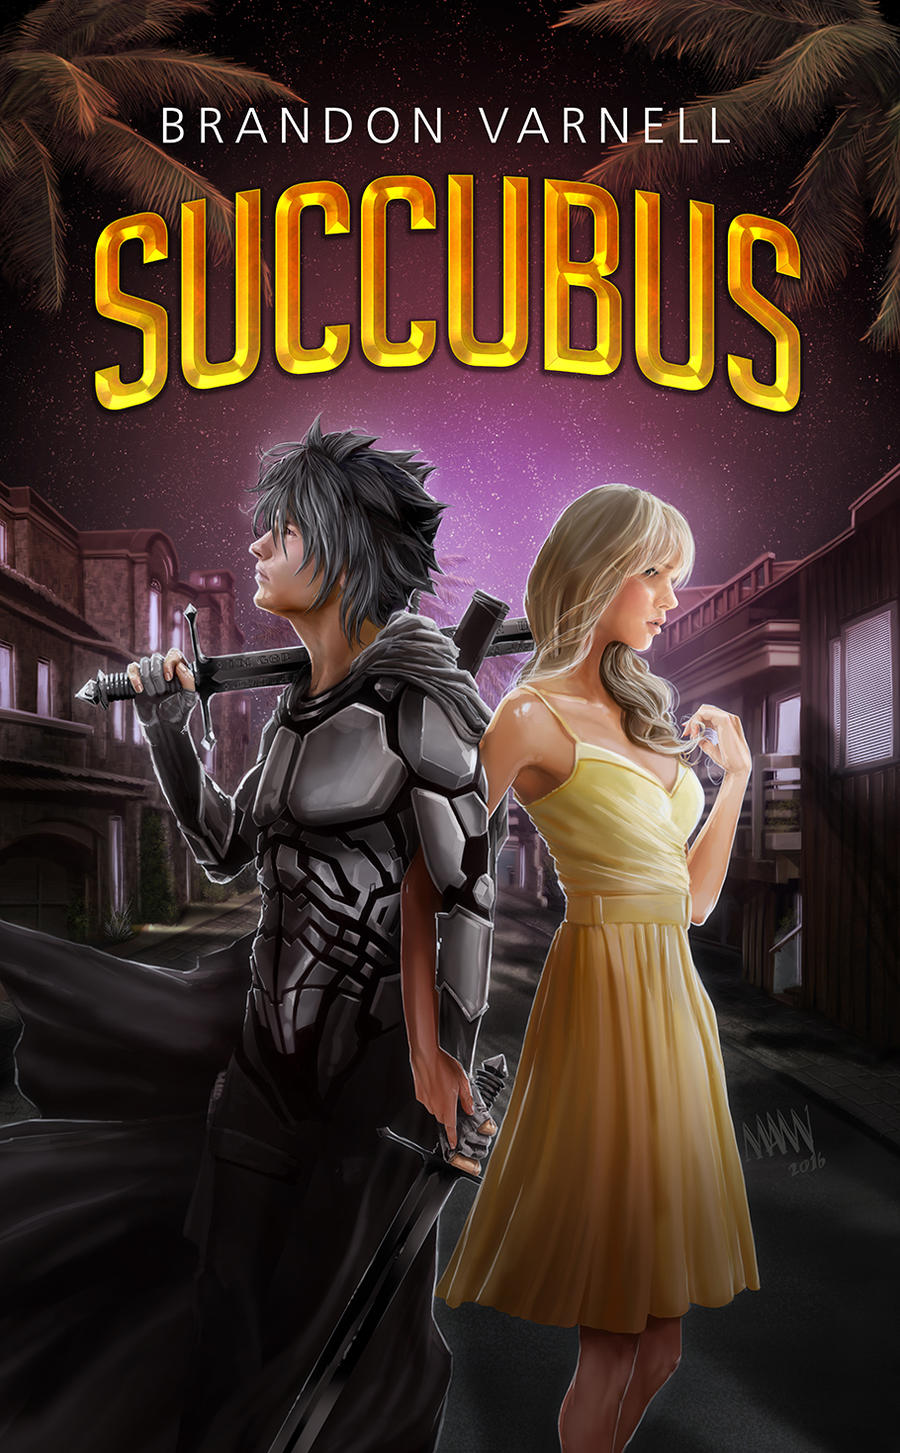 BrandonVarnell Succubus book cover by LawrenceMann